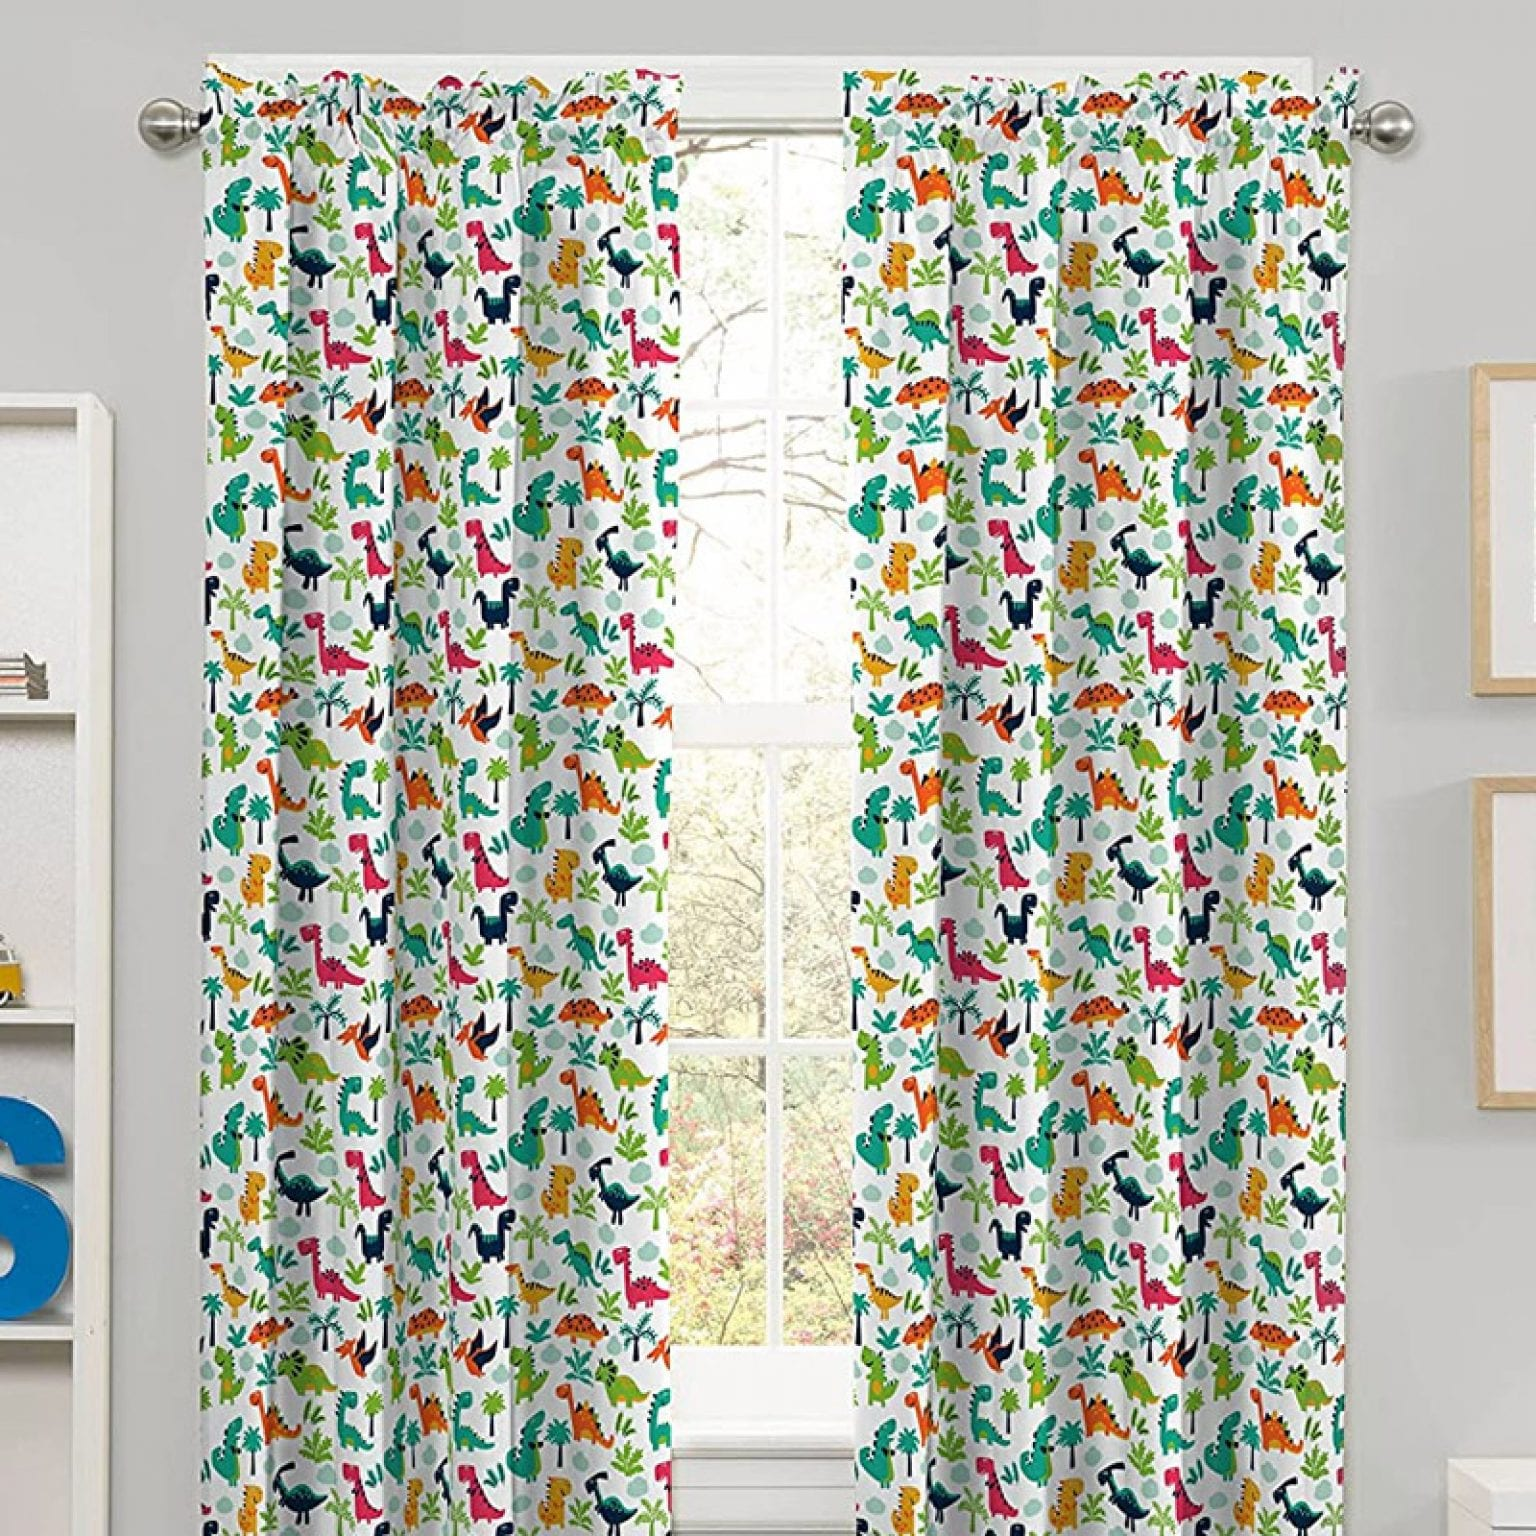 6. Eclipse Dippy Dinos Thermal Insulated Single Panel Room Darkening Curtains